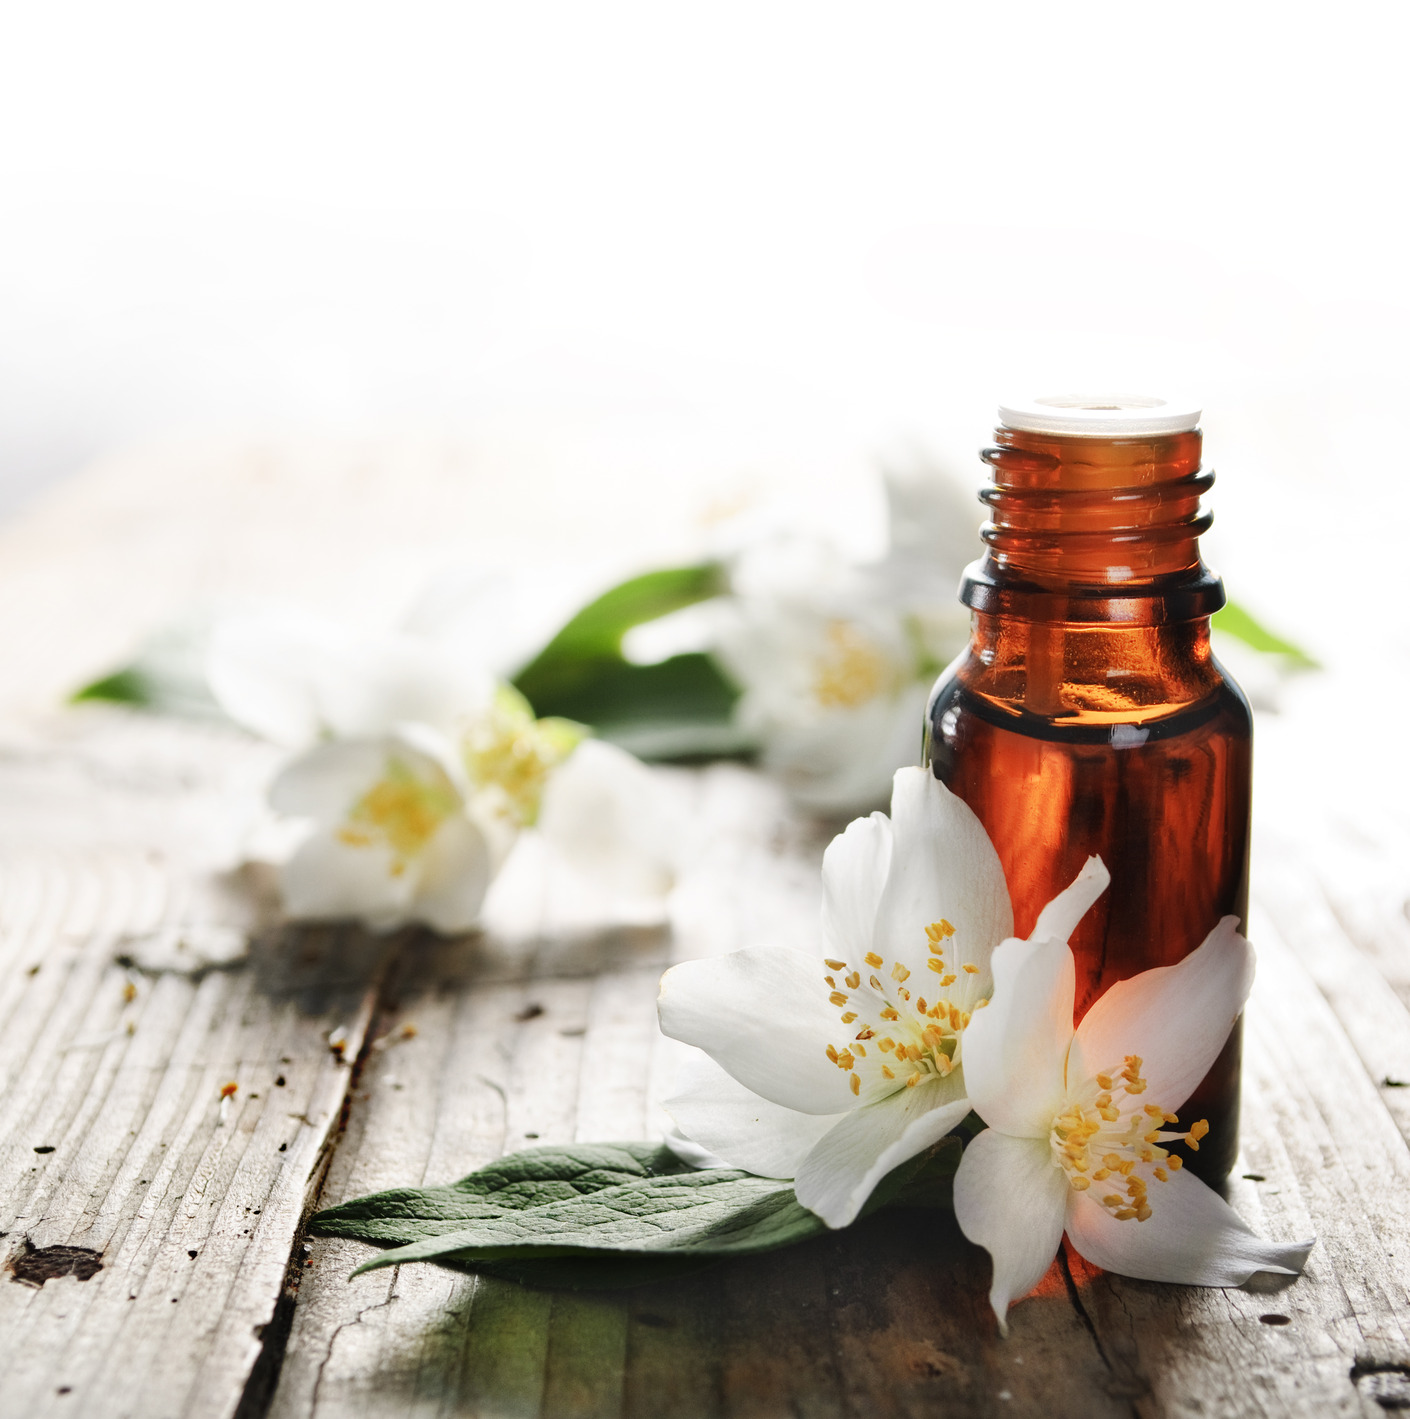 A Haute Essential Oil Guide For Everyday Use